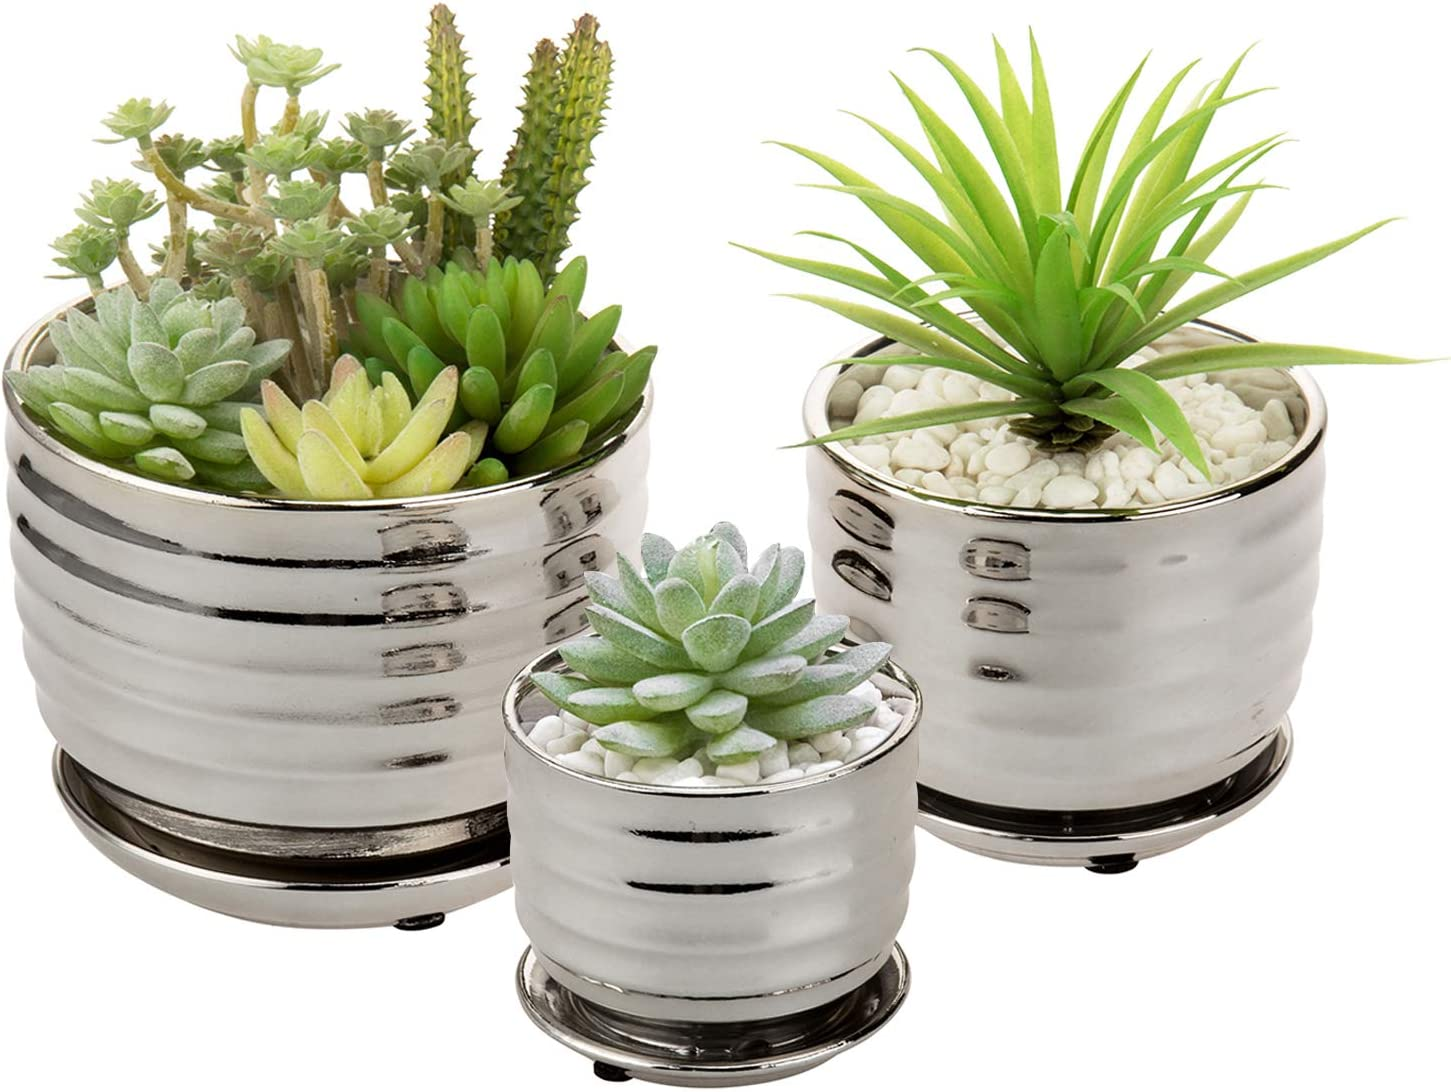 MyGift Contemporary Metallic Silver Tone Nesting Ceramic Tabletop Planter Pots with Horizontal Ribbed Design and Attached Saucers, 3 Piece Set